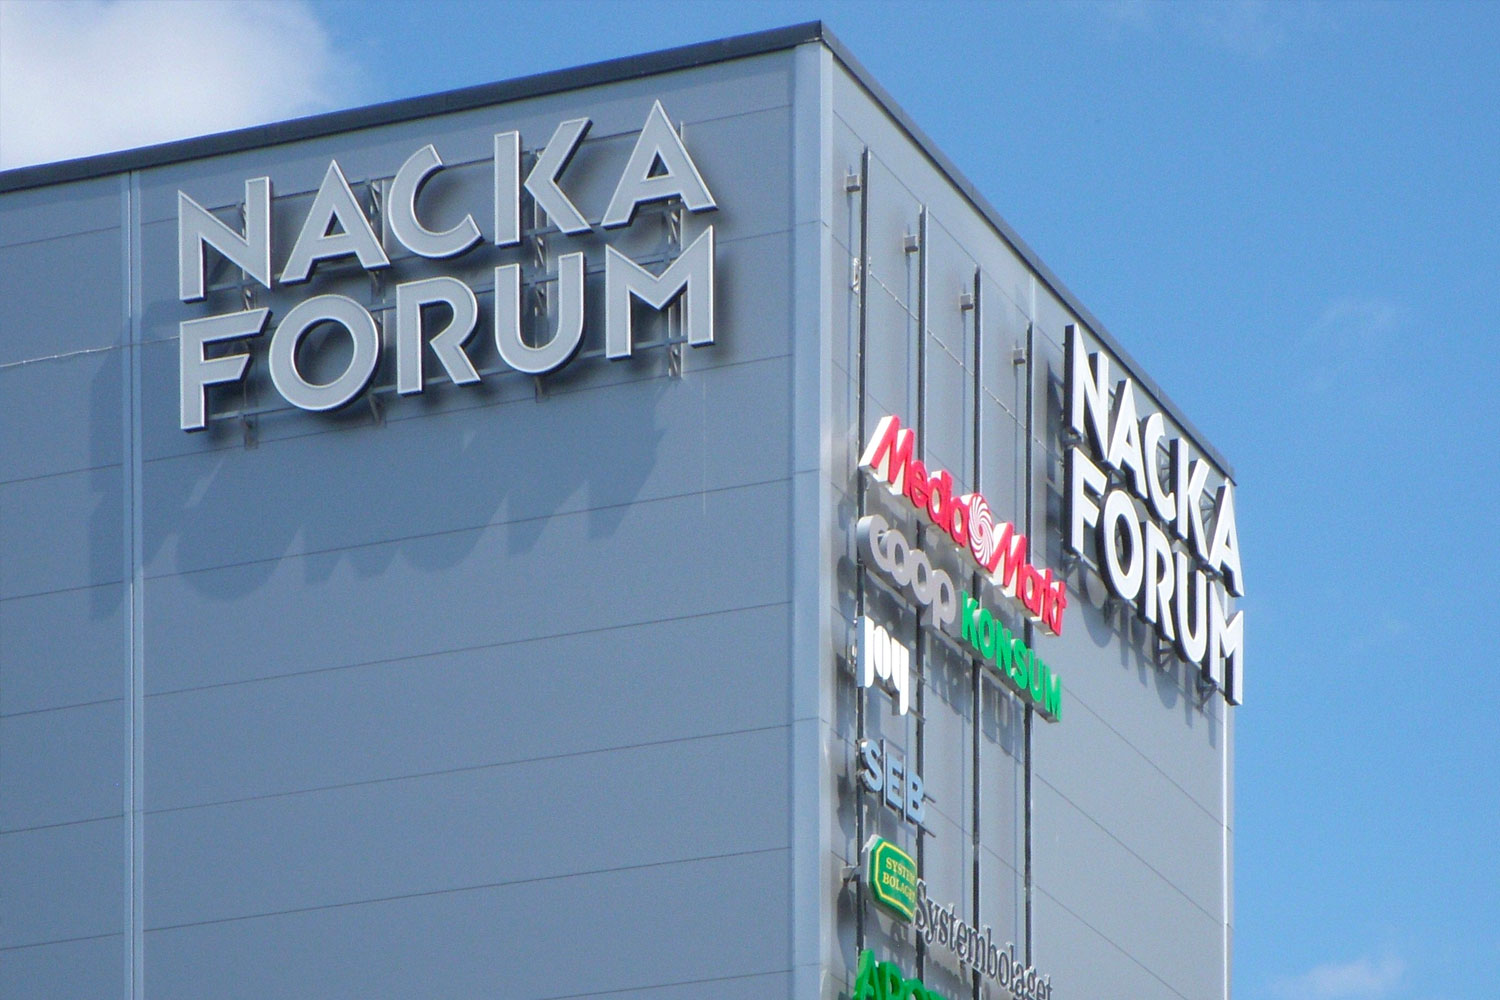 nackaforum_referens